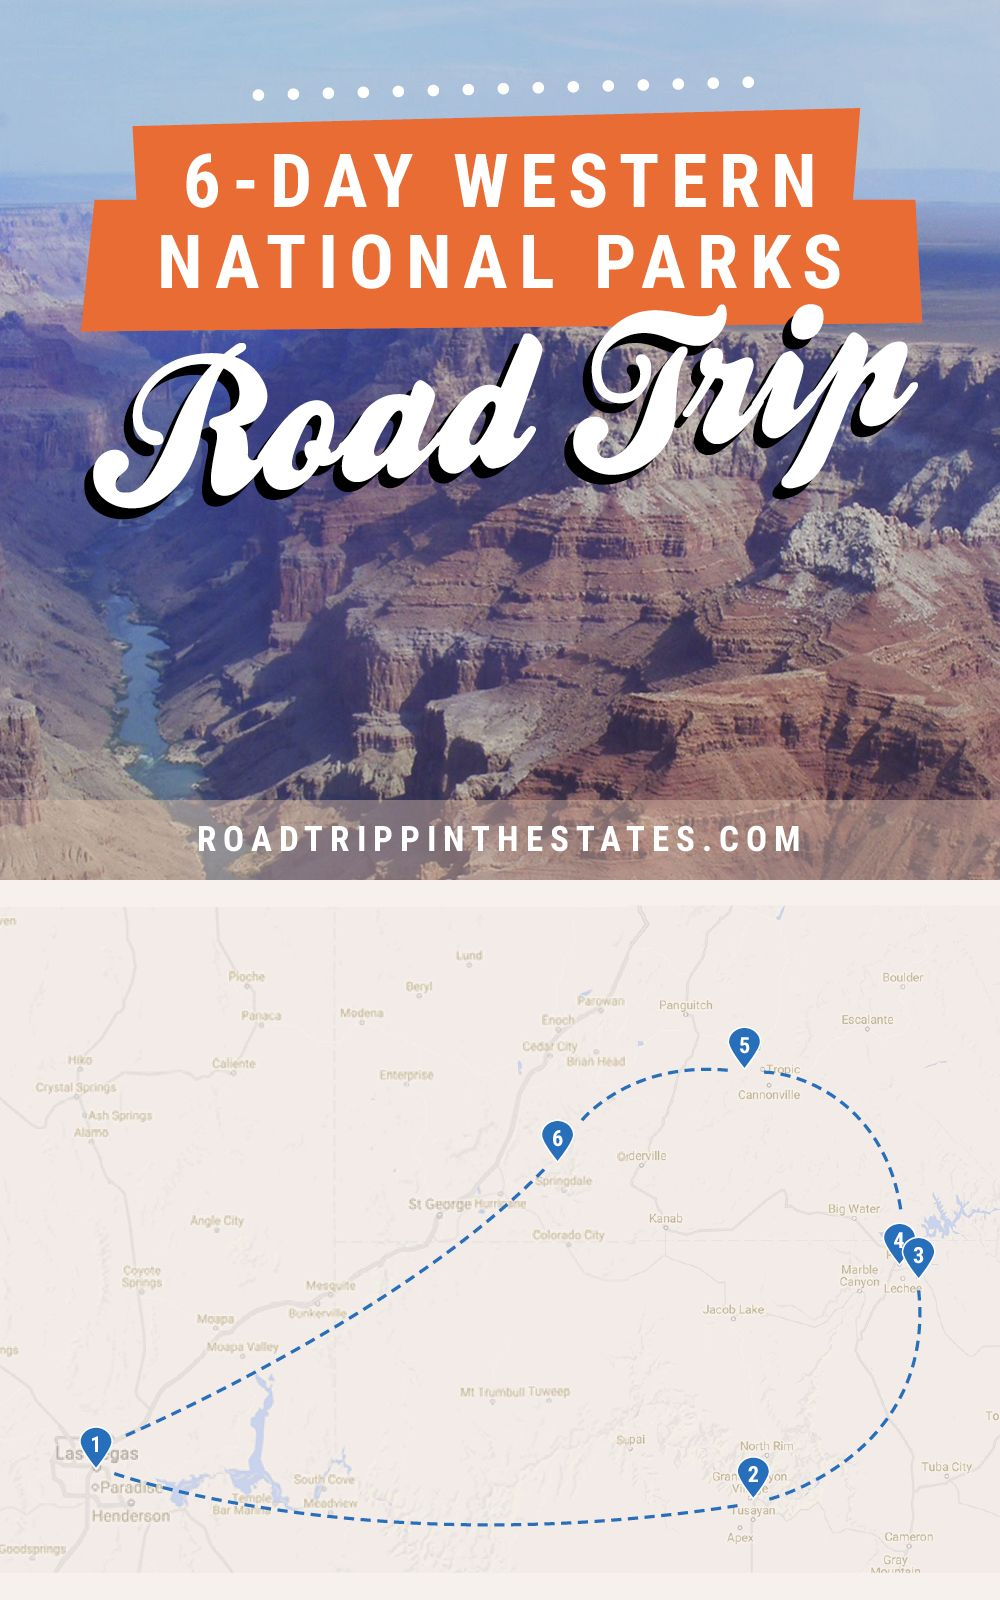 Day Western National Parks Road Trip Road Trippin Antelope - Us national parks road trip map